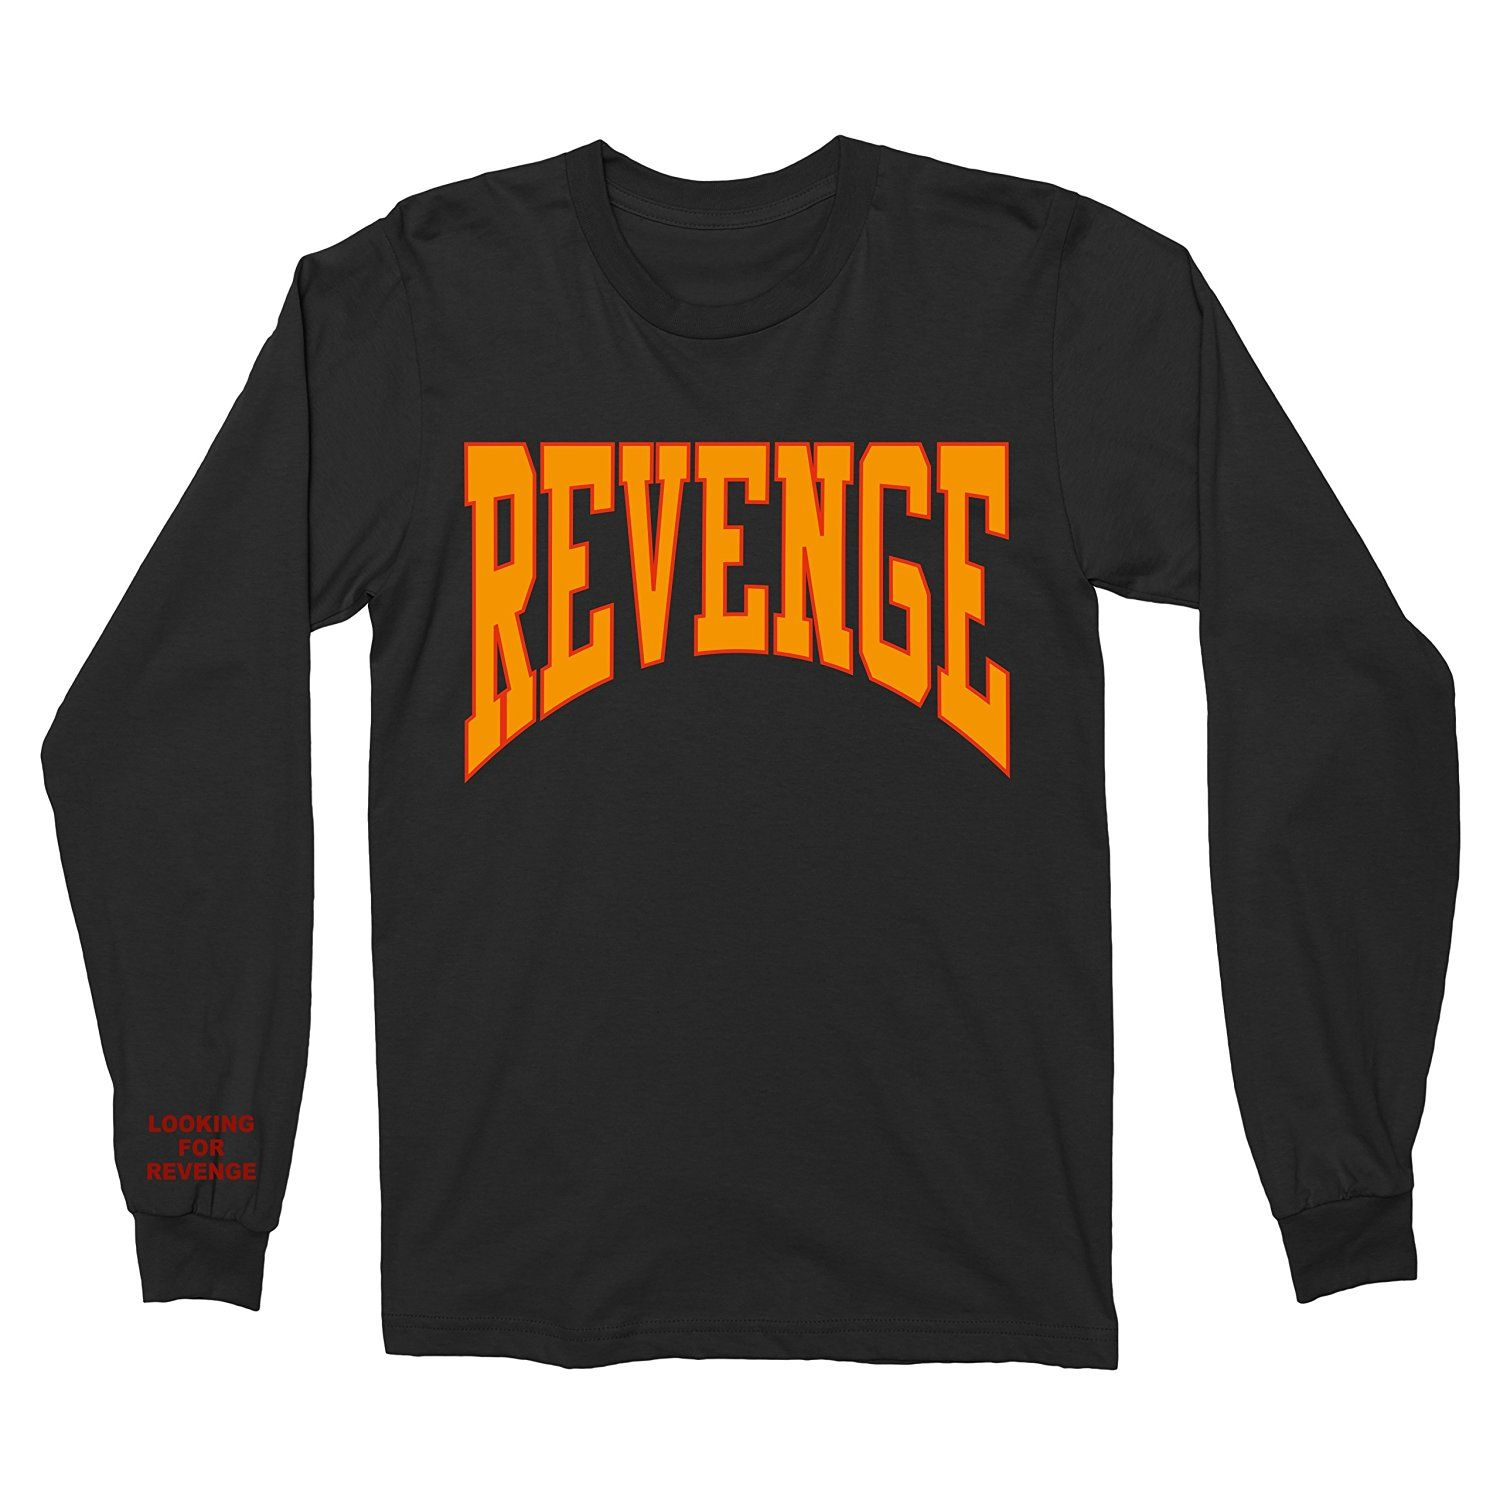 4ba1d1f19de1 Amazon.com  Max Apparel Drake Summer Sixteen Tour Revenge Shirt Long Sleeve  (Small)  Clothing